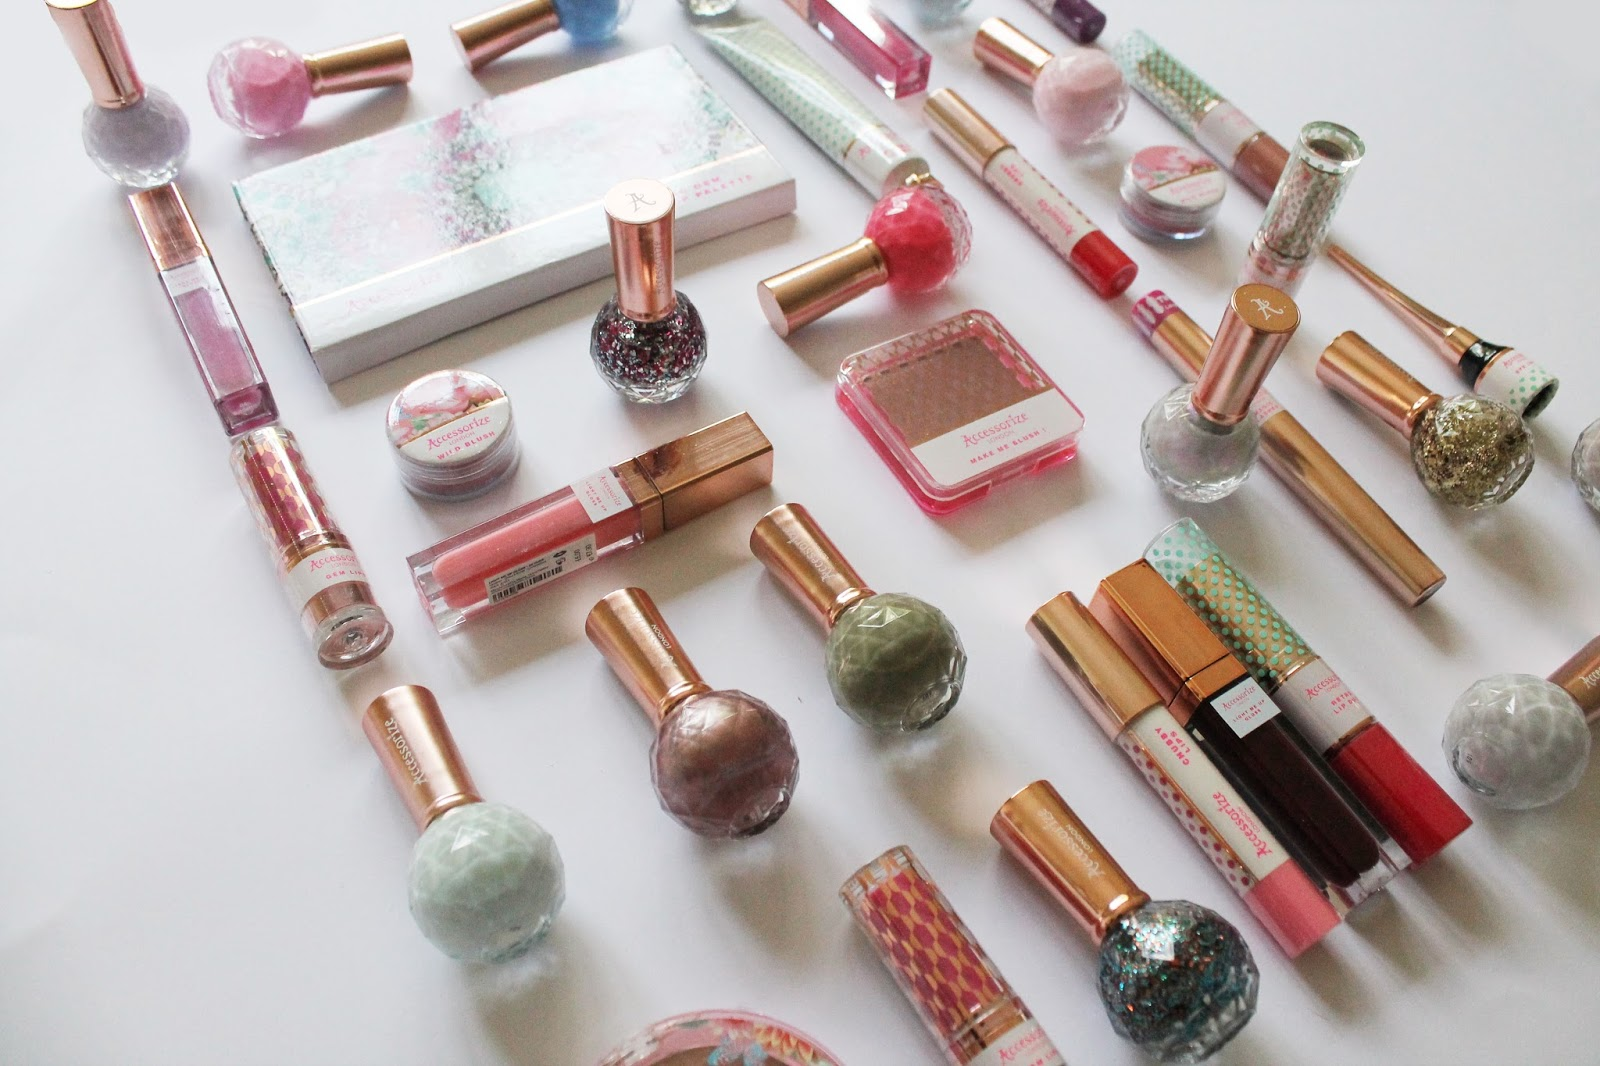 beauty, cosmetics, lipstick, blush, pretty, girl, bbloggers, lip gloss, mascara, accessorize, accessorize beauty, giveaway